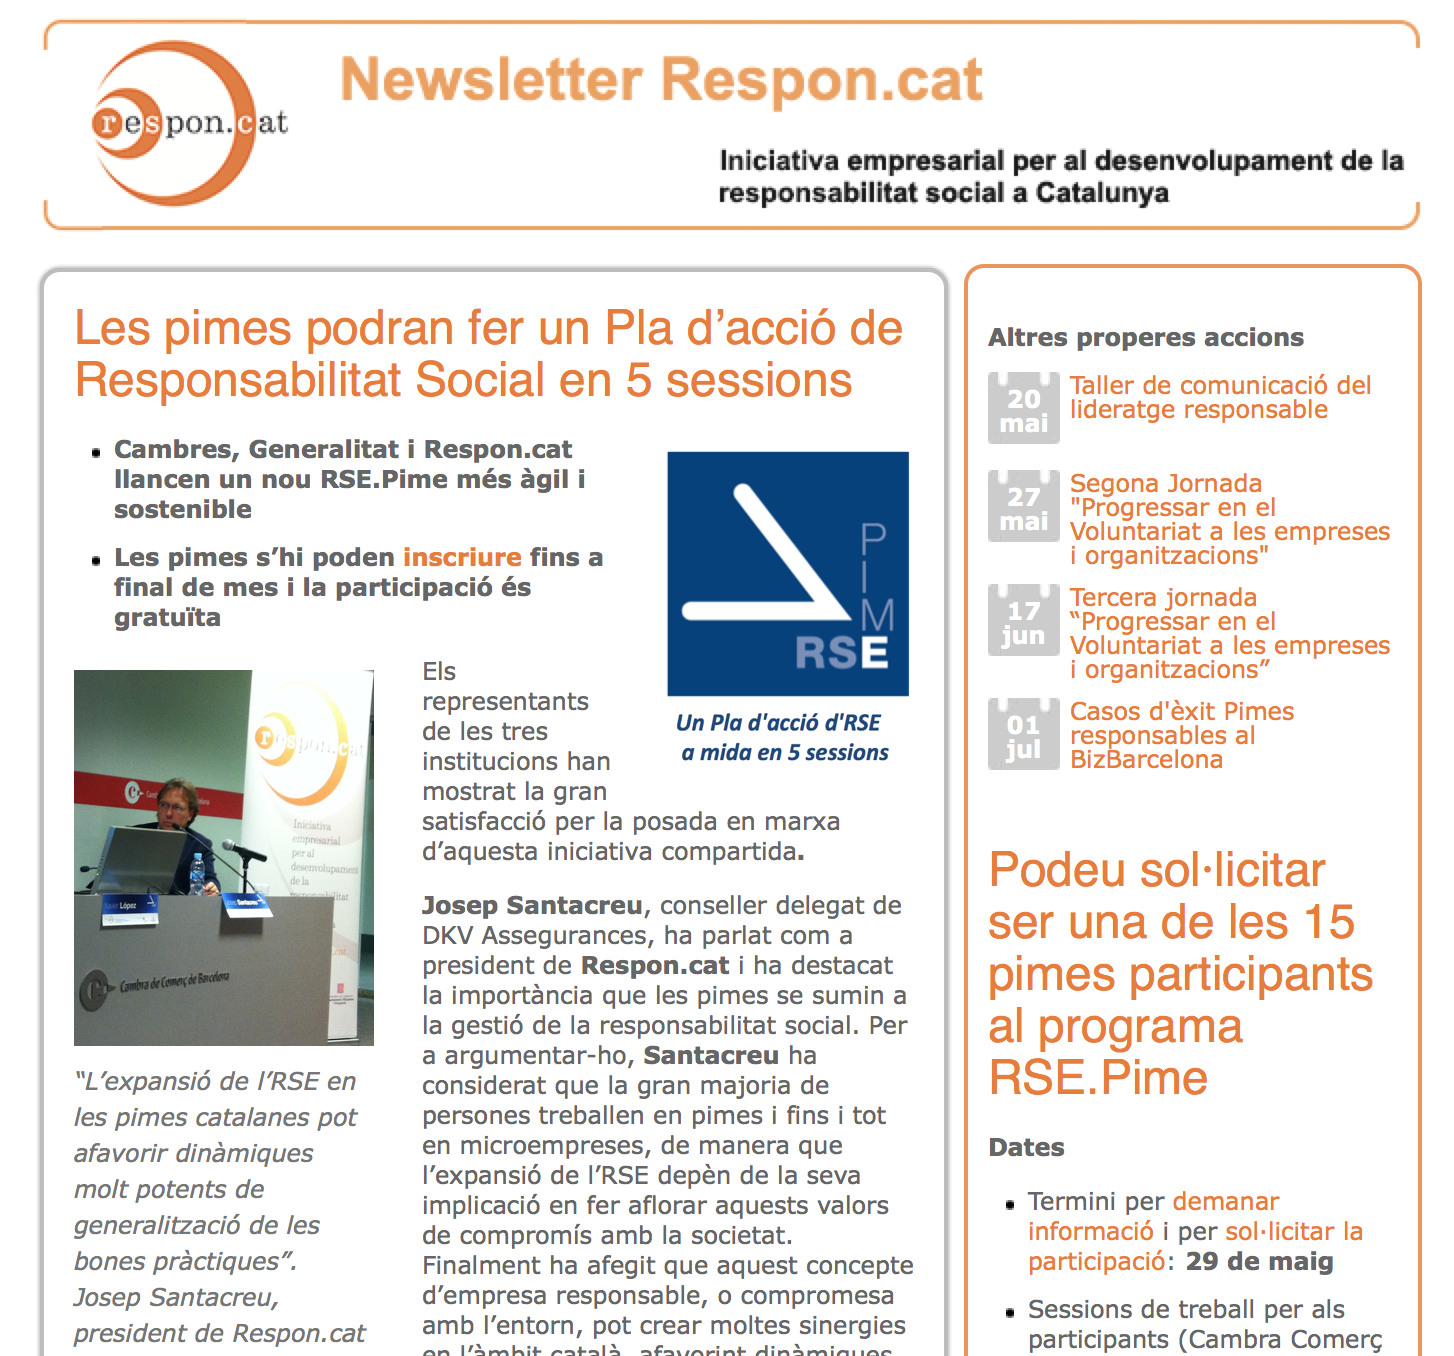 Newsletter_Respon.cat_RSE_Pime_2015_Captura_pantalla